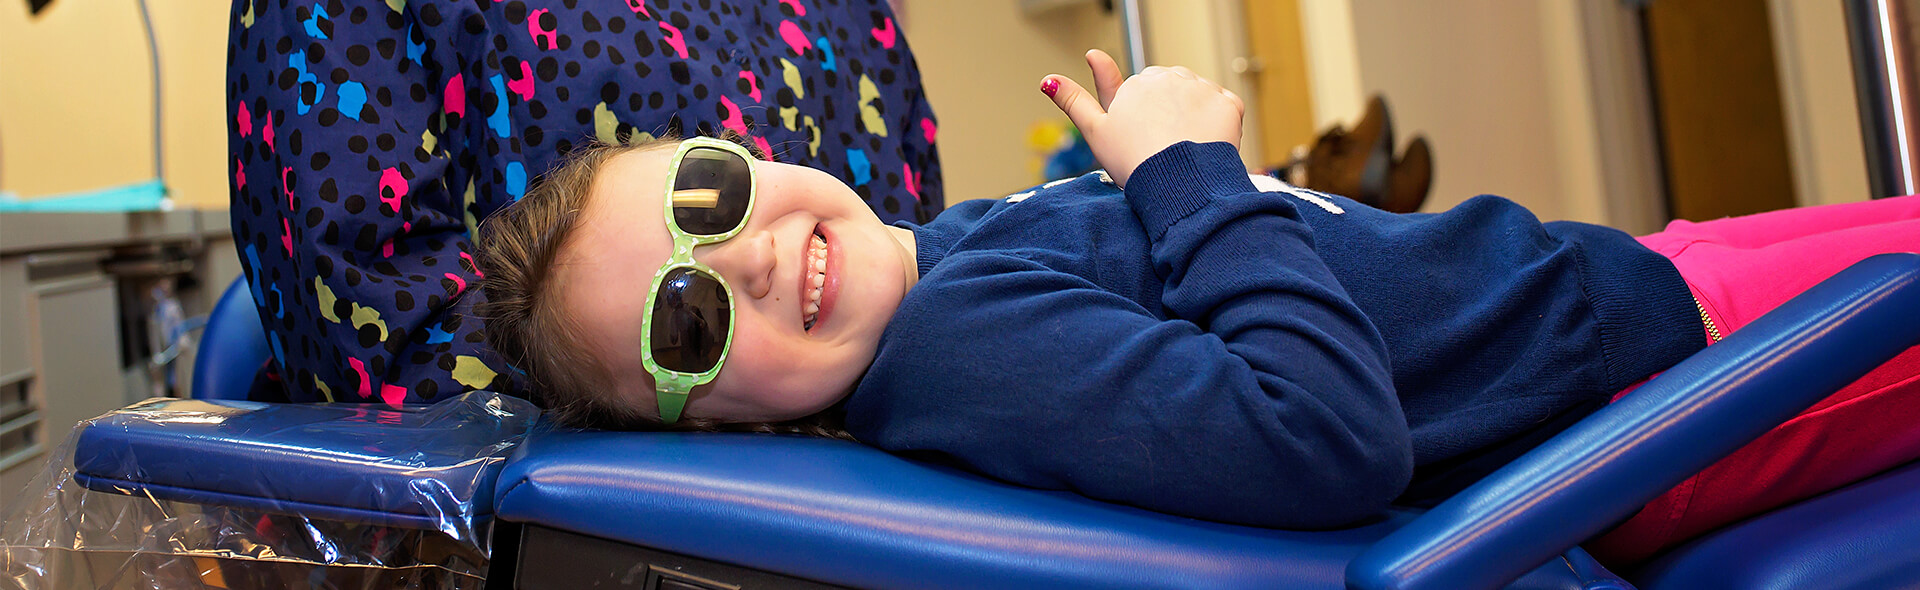 Girl in shades - Pediatric Dentist in Hales Corners, WI